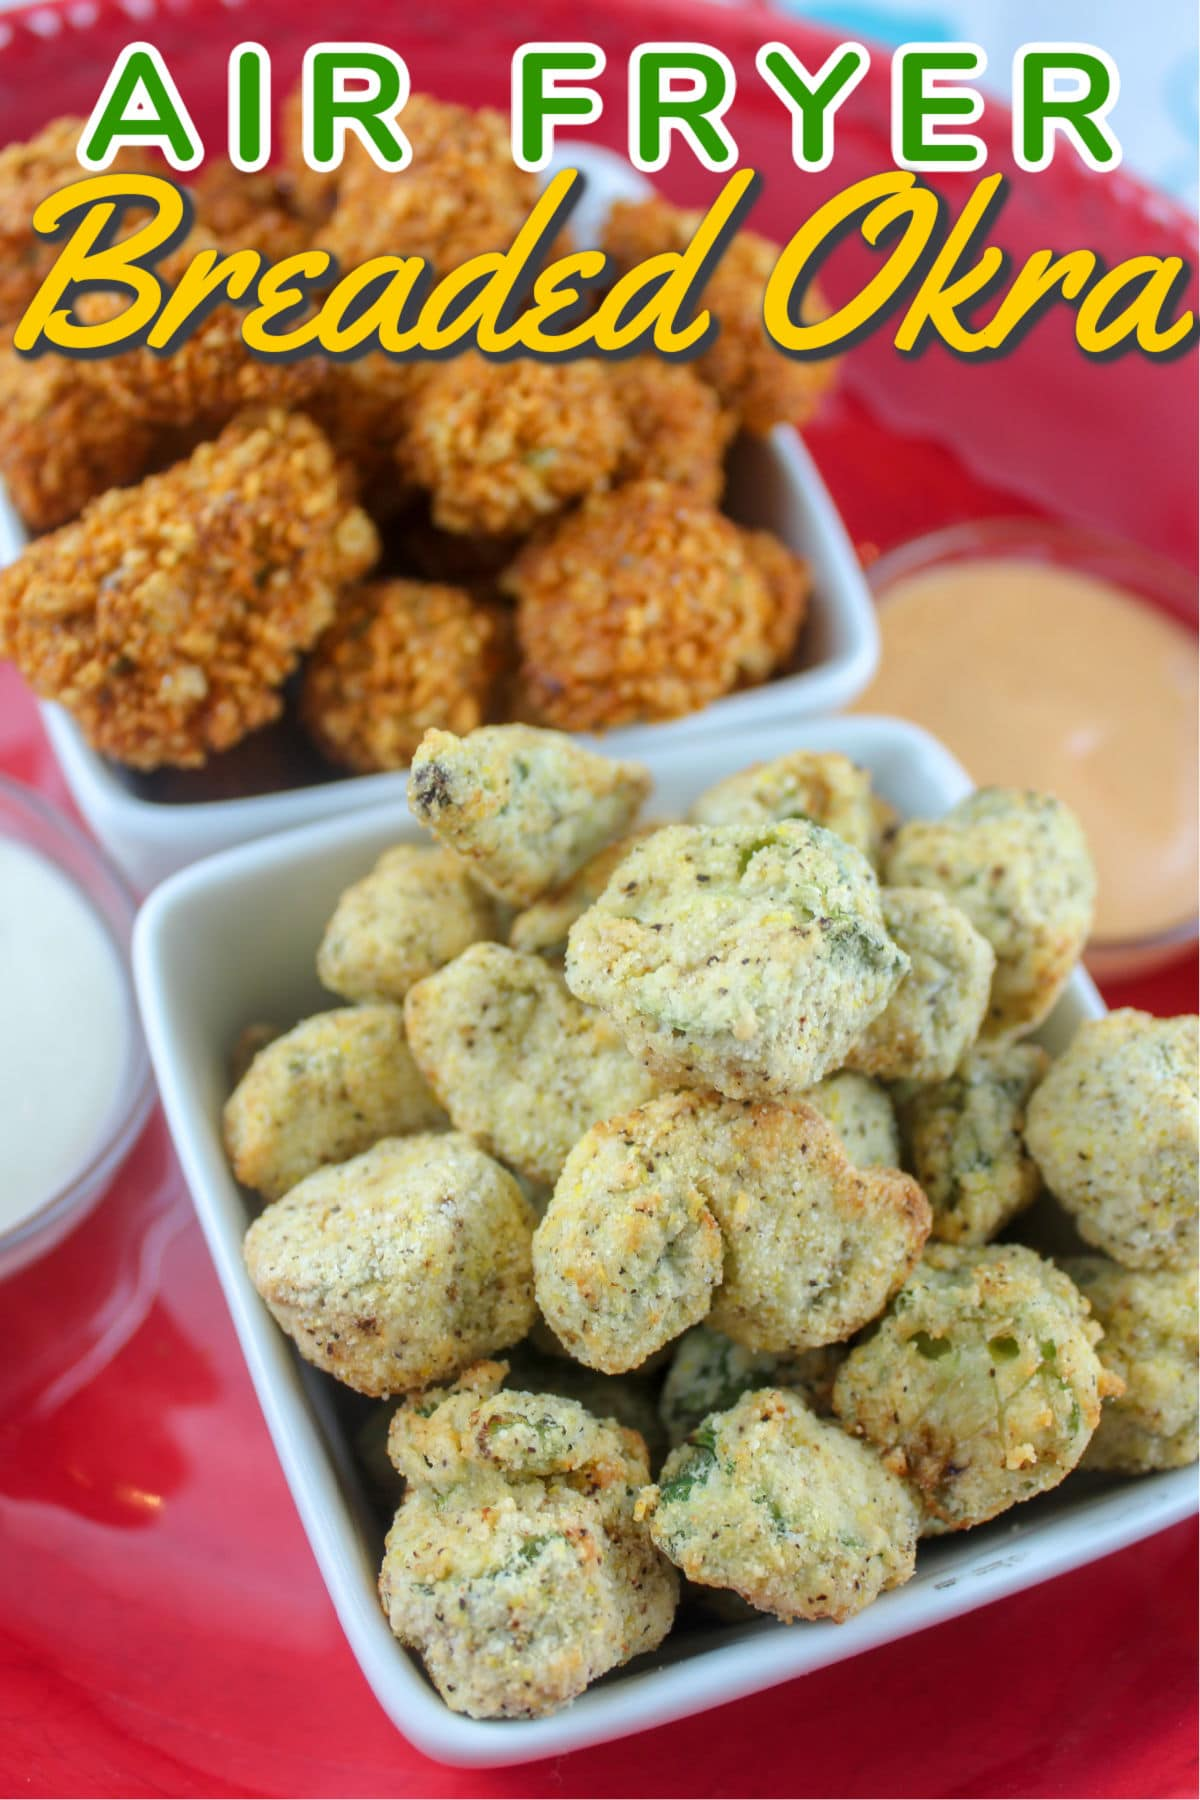 Breaded okra is totally a staple in the south - but us northern folk still know how to fix it! I love making okra in the air fryer! Crunchy little nuggets of goodness! Last week, I was at the farmers market and found a bunch and decided I would make it for myself!  via @foodhussy